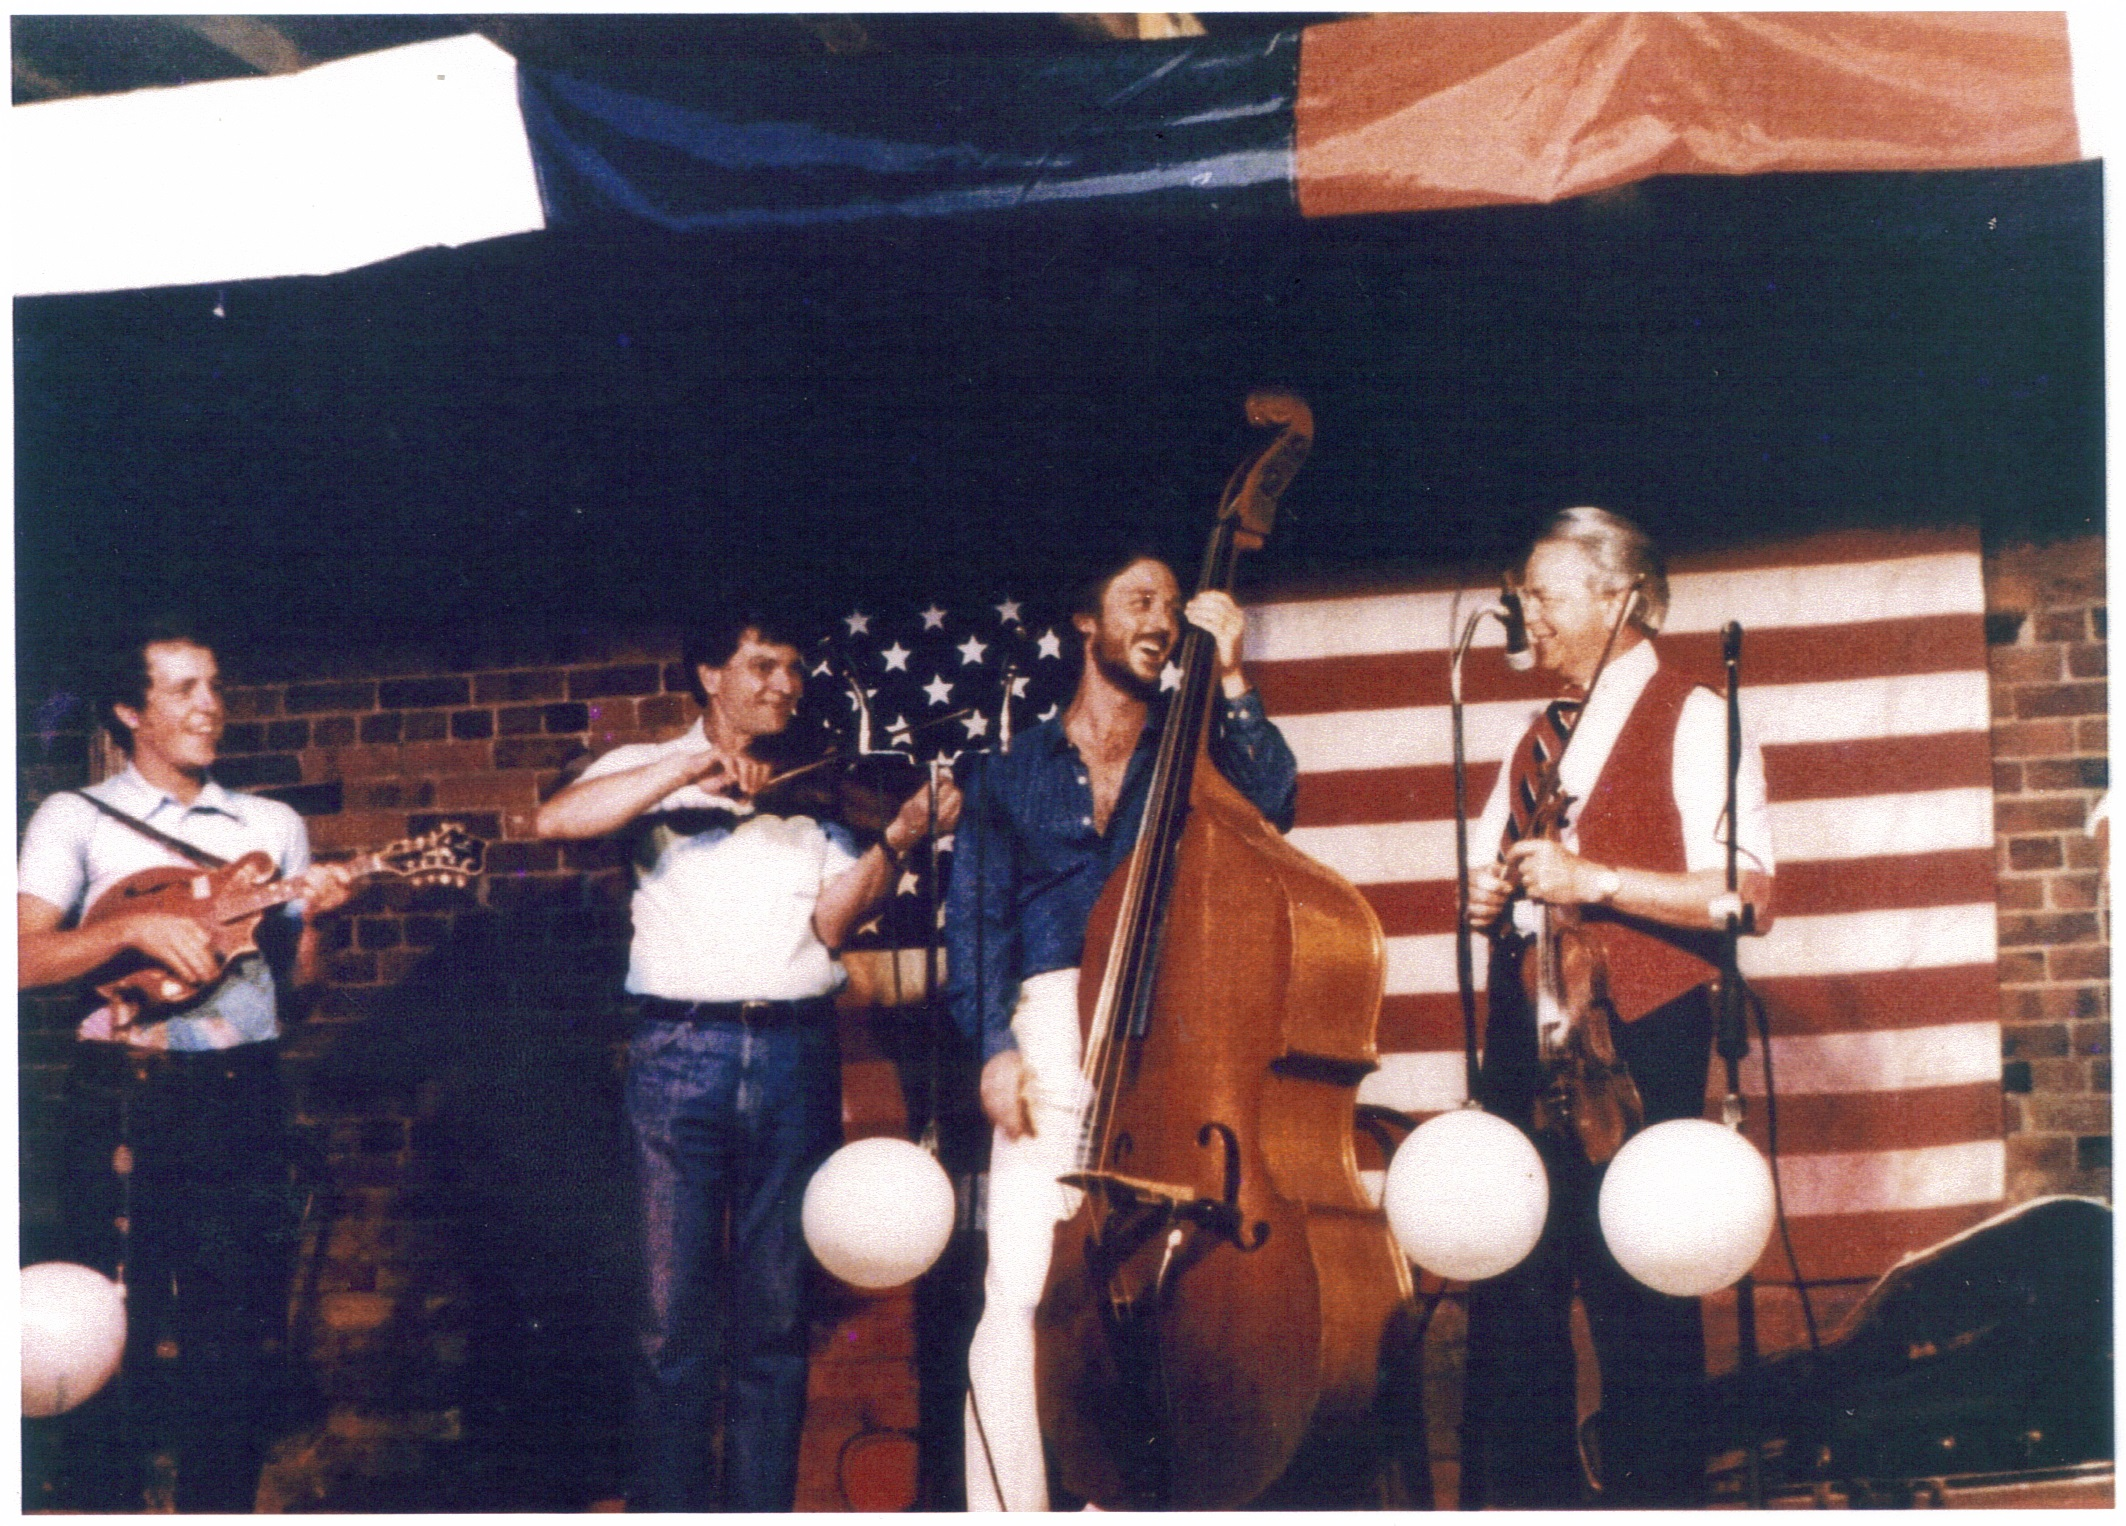 Arvil Freeman, second from left, playing fiddle with former Senator Robert Byrd, far right.